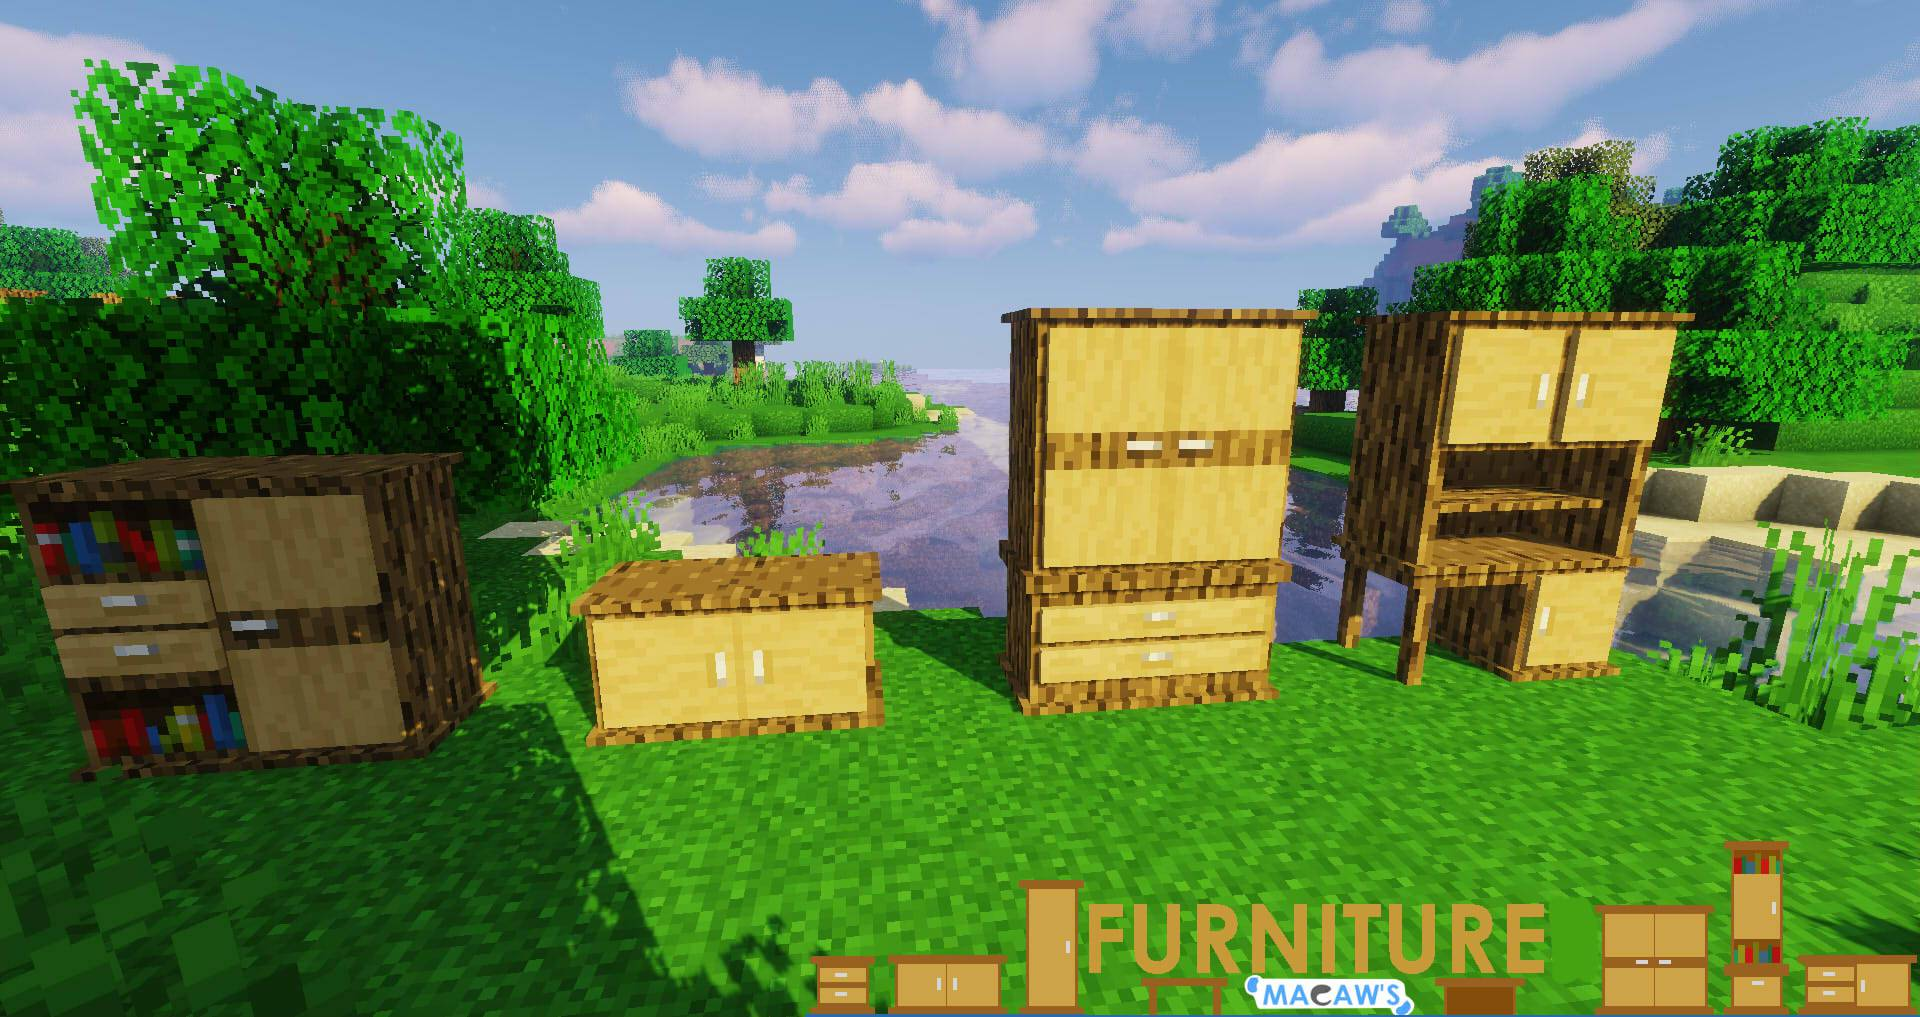 Macaw_s Furniture mod for minecraft 27